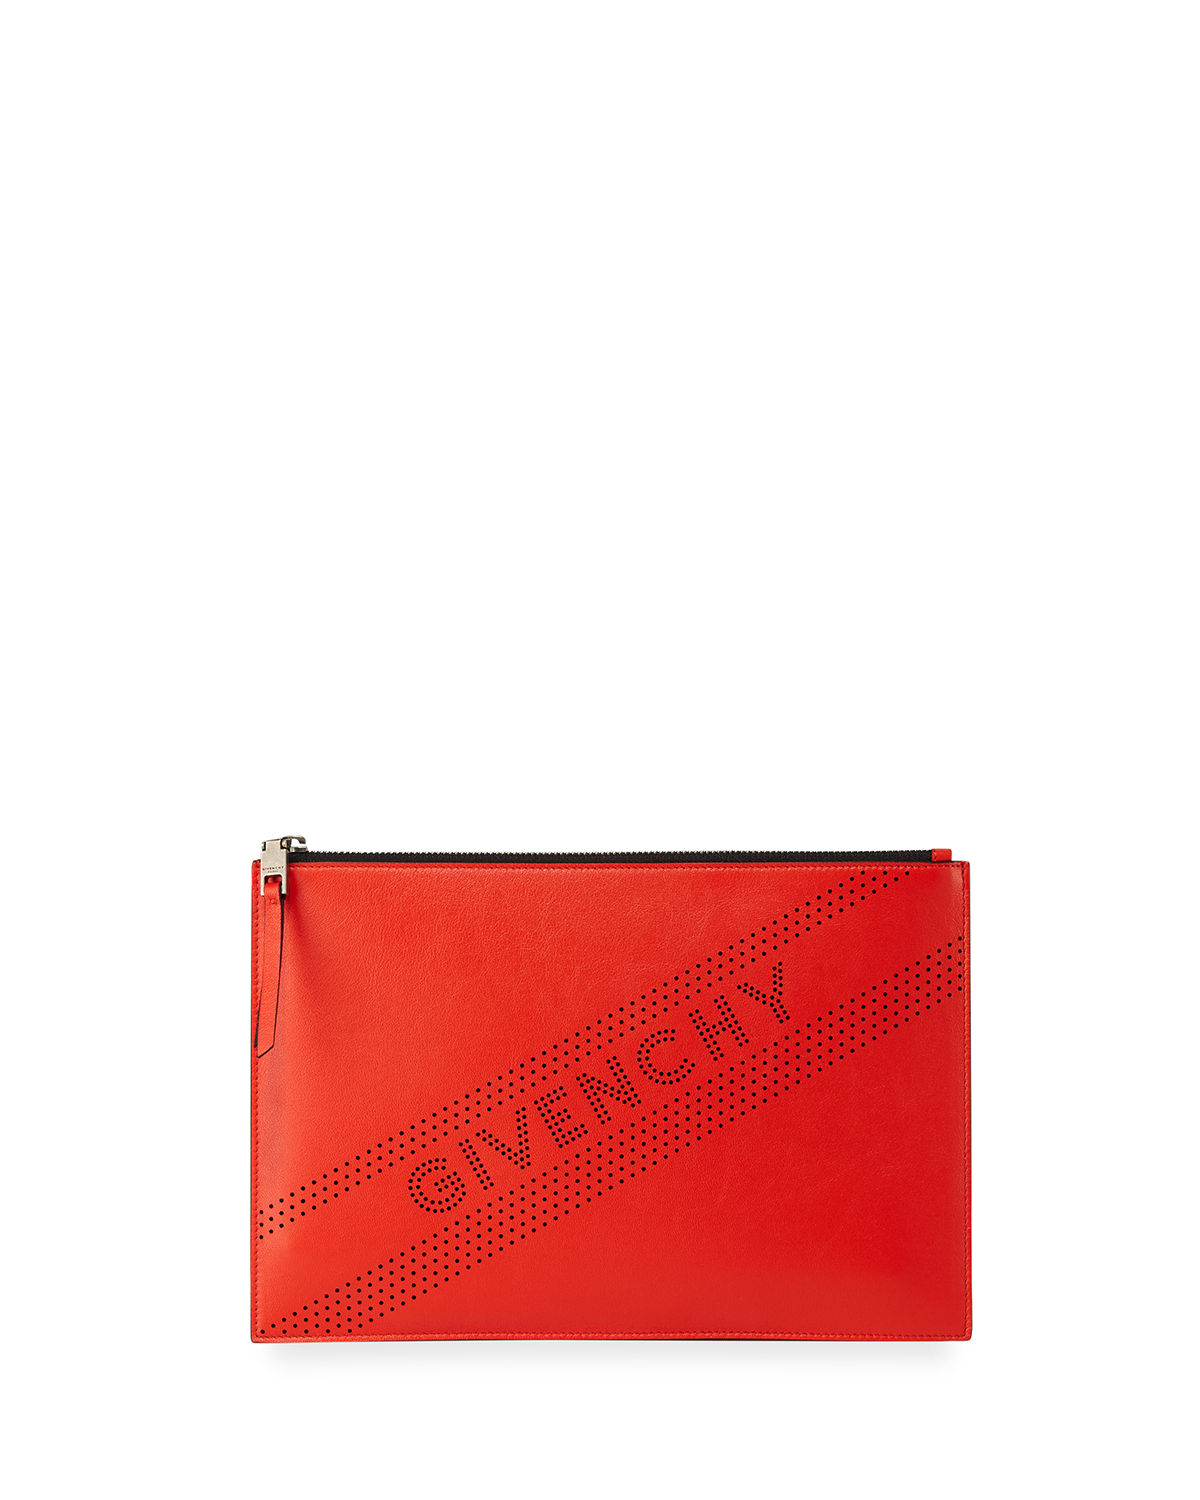 Givenchy Emblem Medium Perforated Leather Pouch Bag  aaf6d6f840303